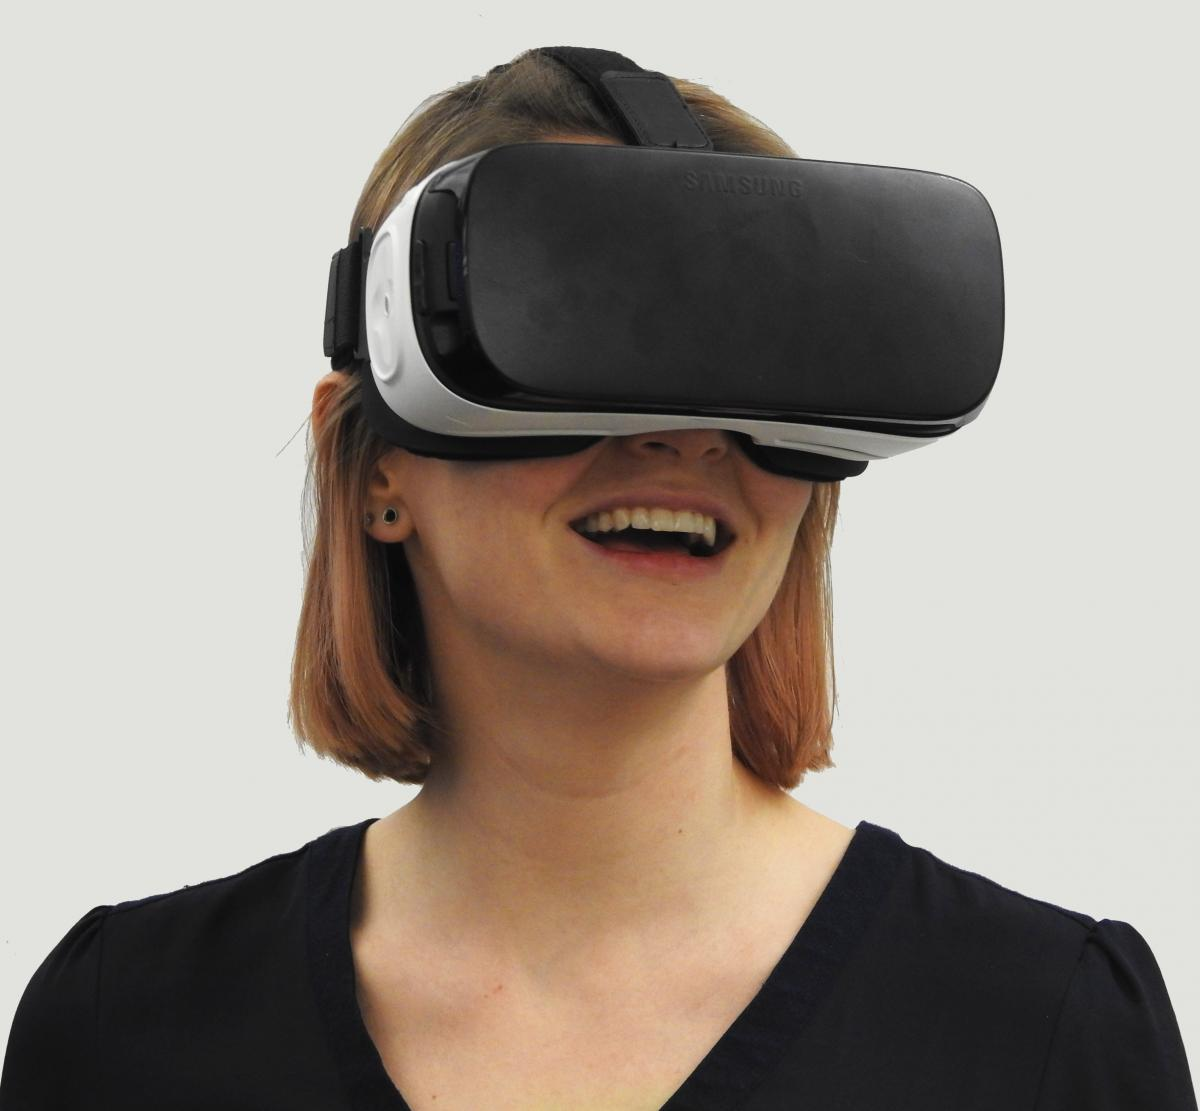 wearing virtual reality headset being worn by a woman